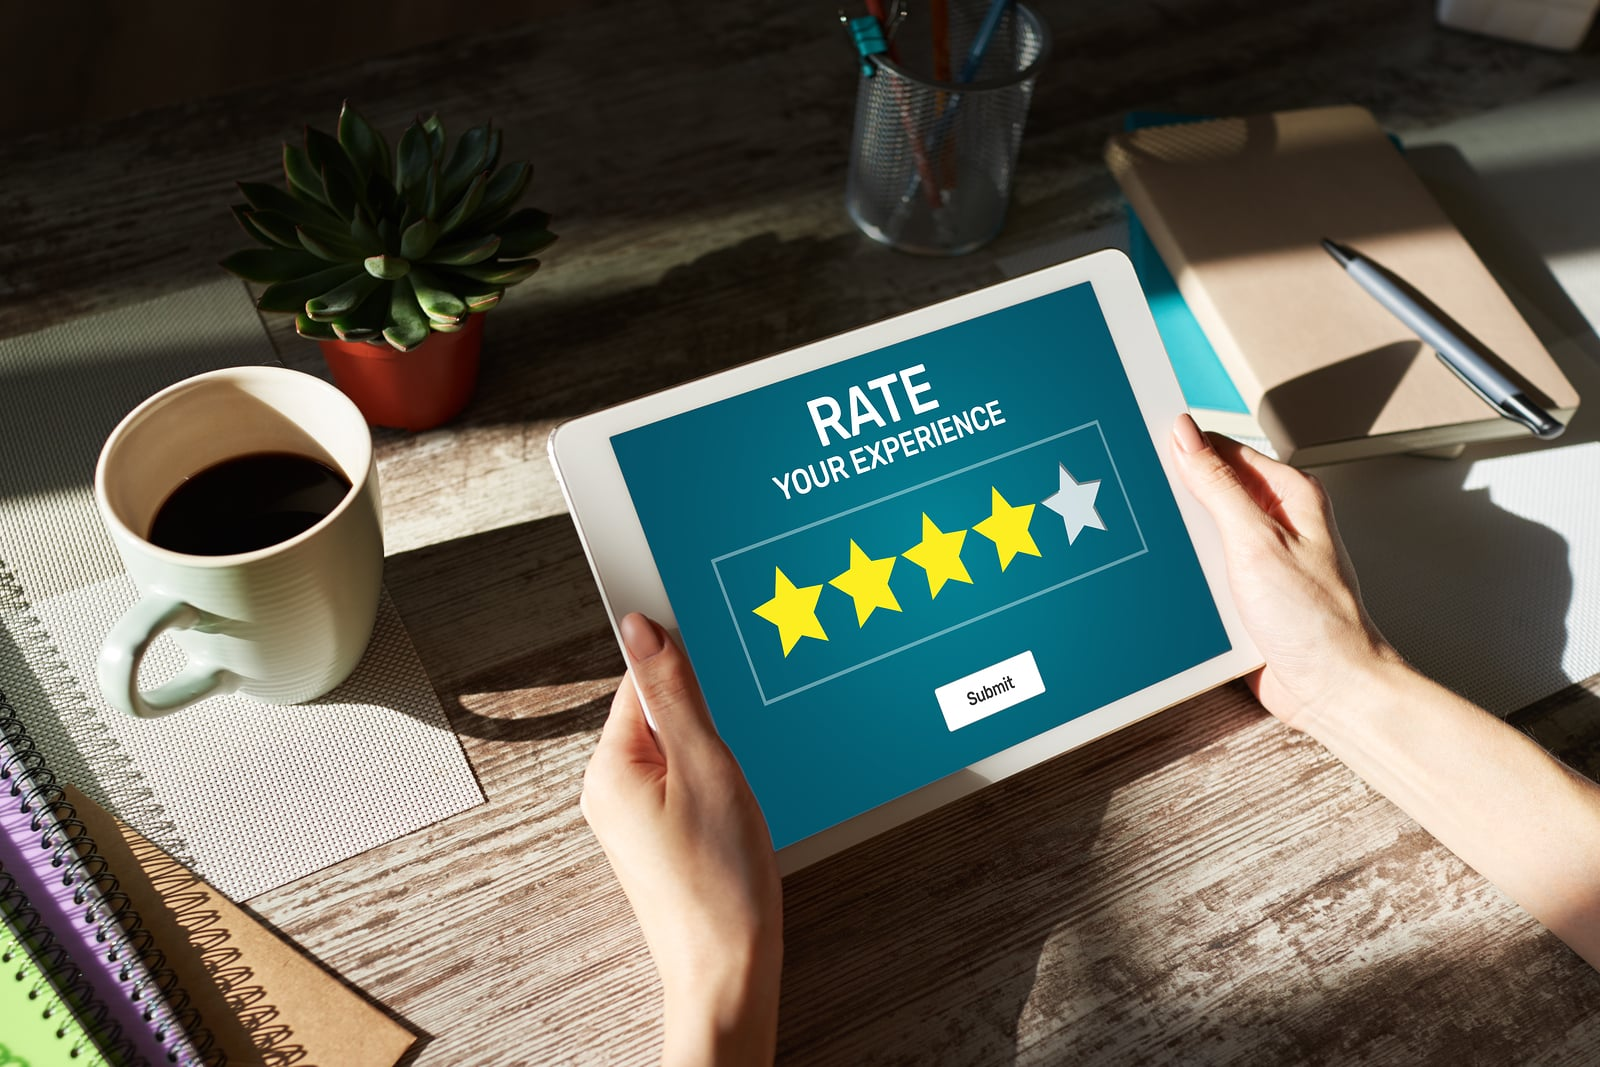 Rate customer experience review, Online Reputation Management